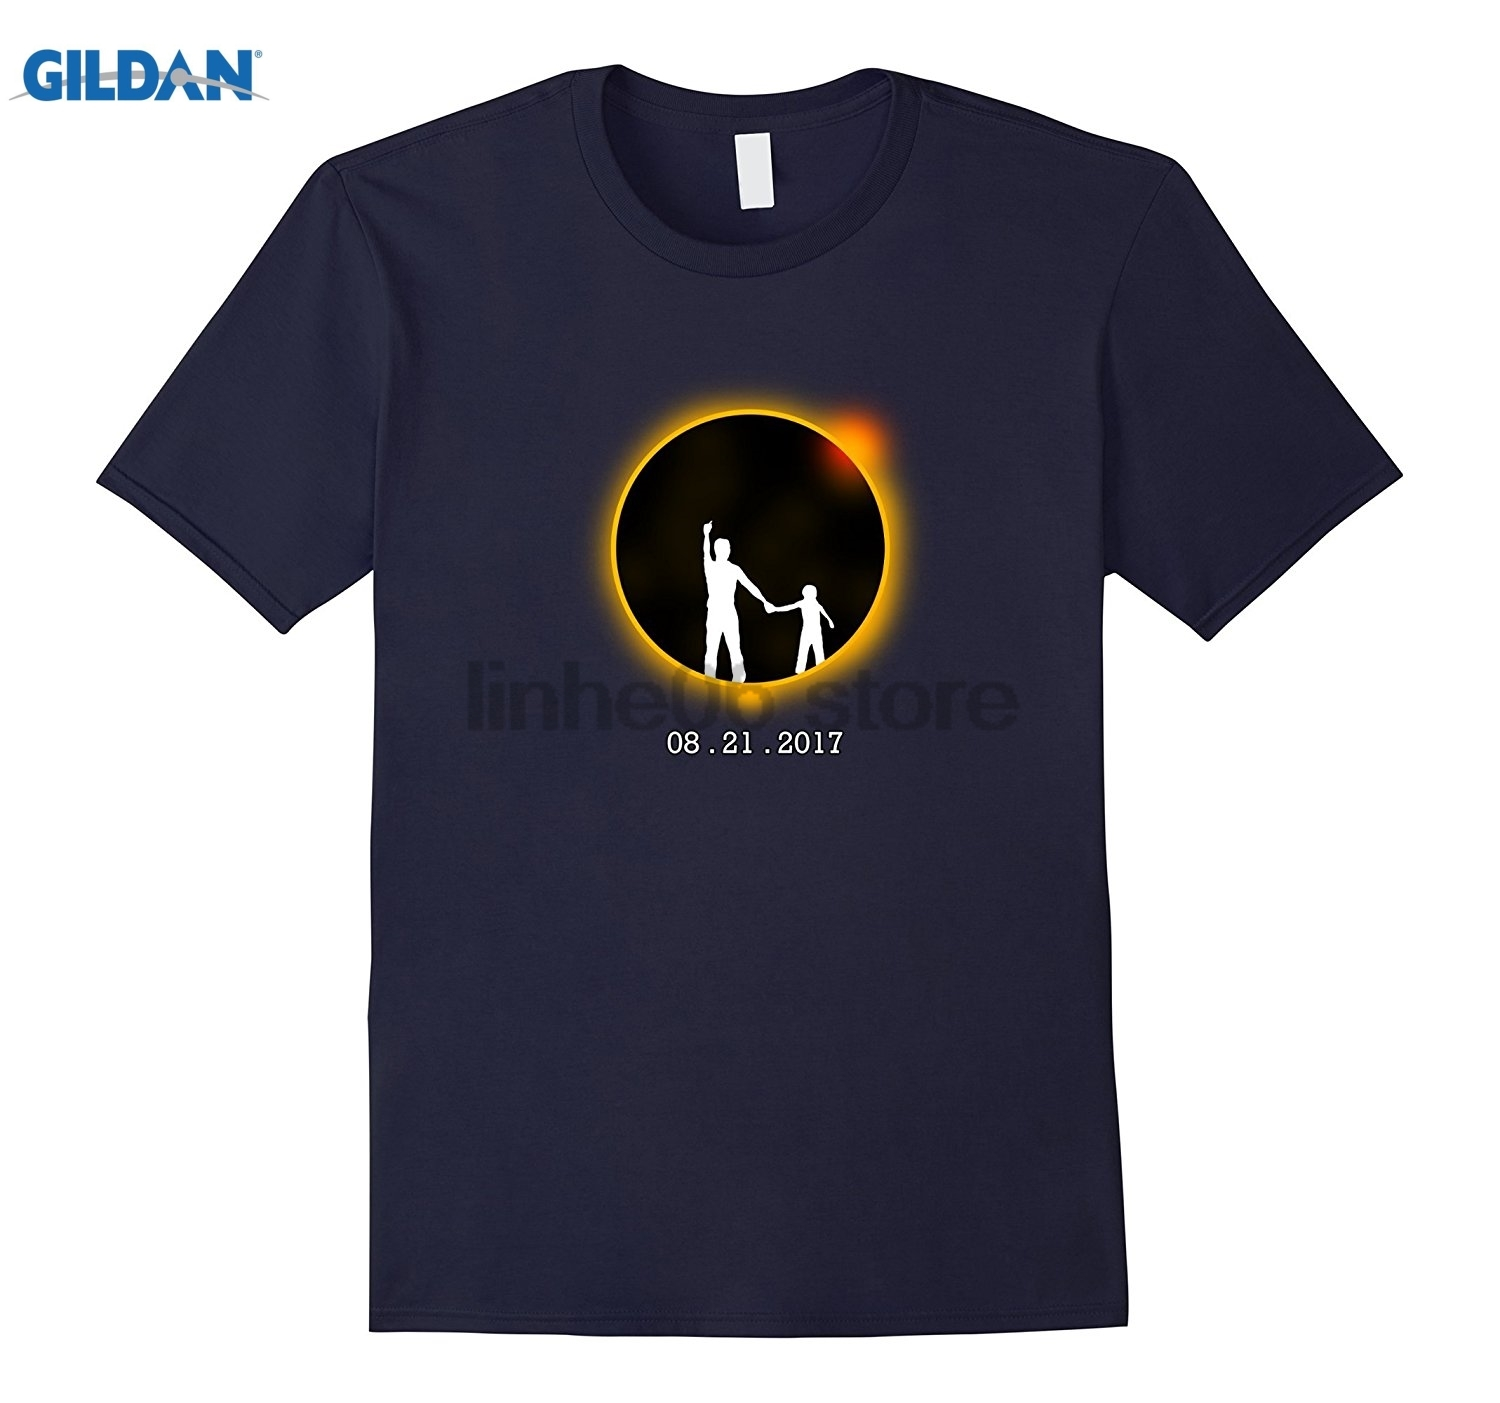 GILDAN Father and Son Solar Eclipse August 21 2017 Mothers Day Ms. T-shirt